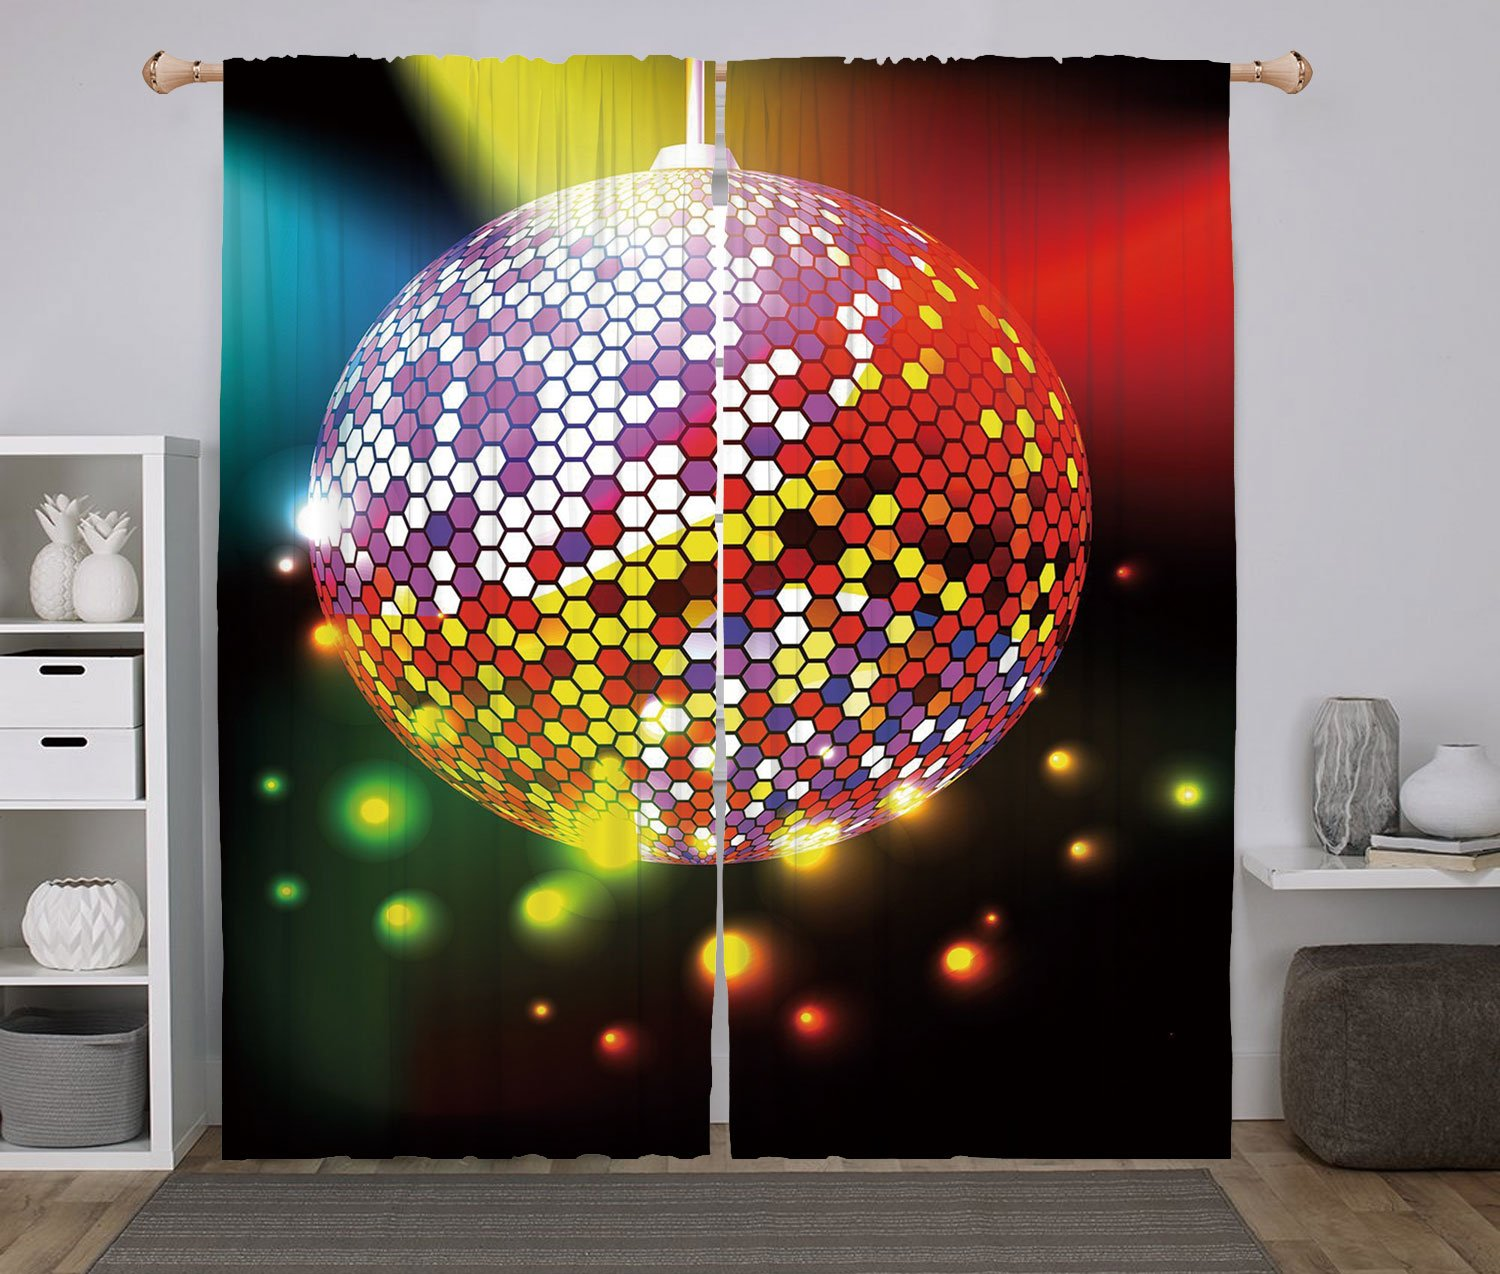 2 Panel Set Window Drapes Kitchen Curtains,Popstar Party Vibrant Colorful Disco Ball Nightclub Celebration Party Dance and Music Print Decorative Multicolor,for Bedroom Living Room Dorm Kitchen Cafe